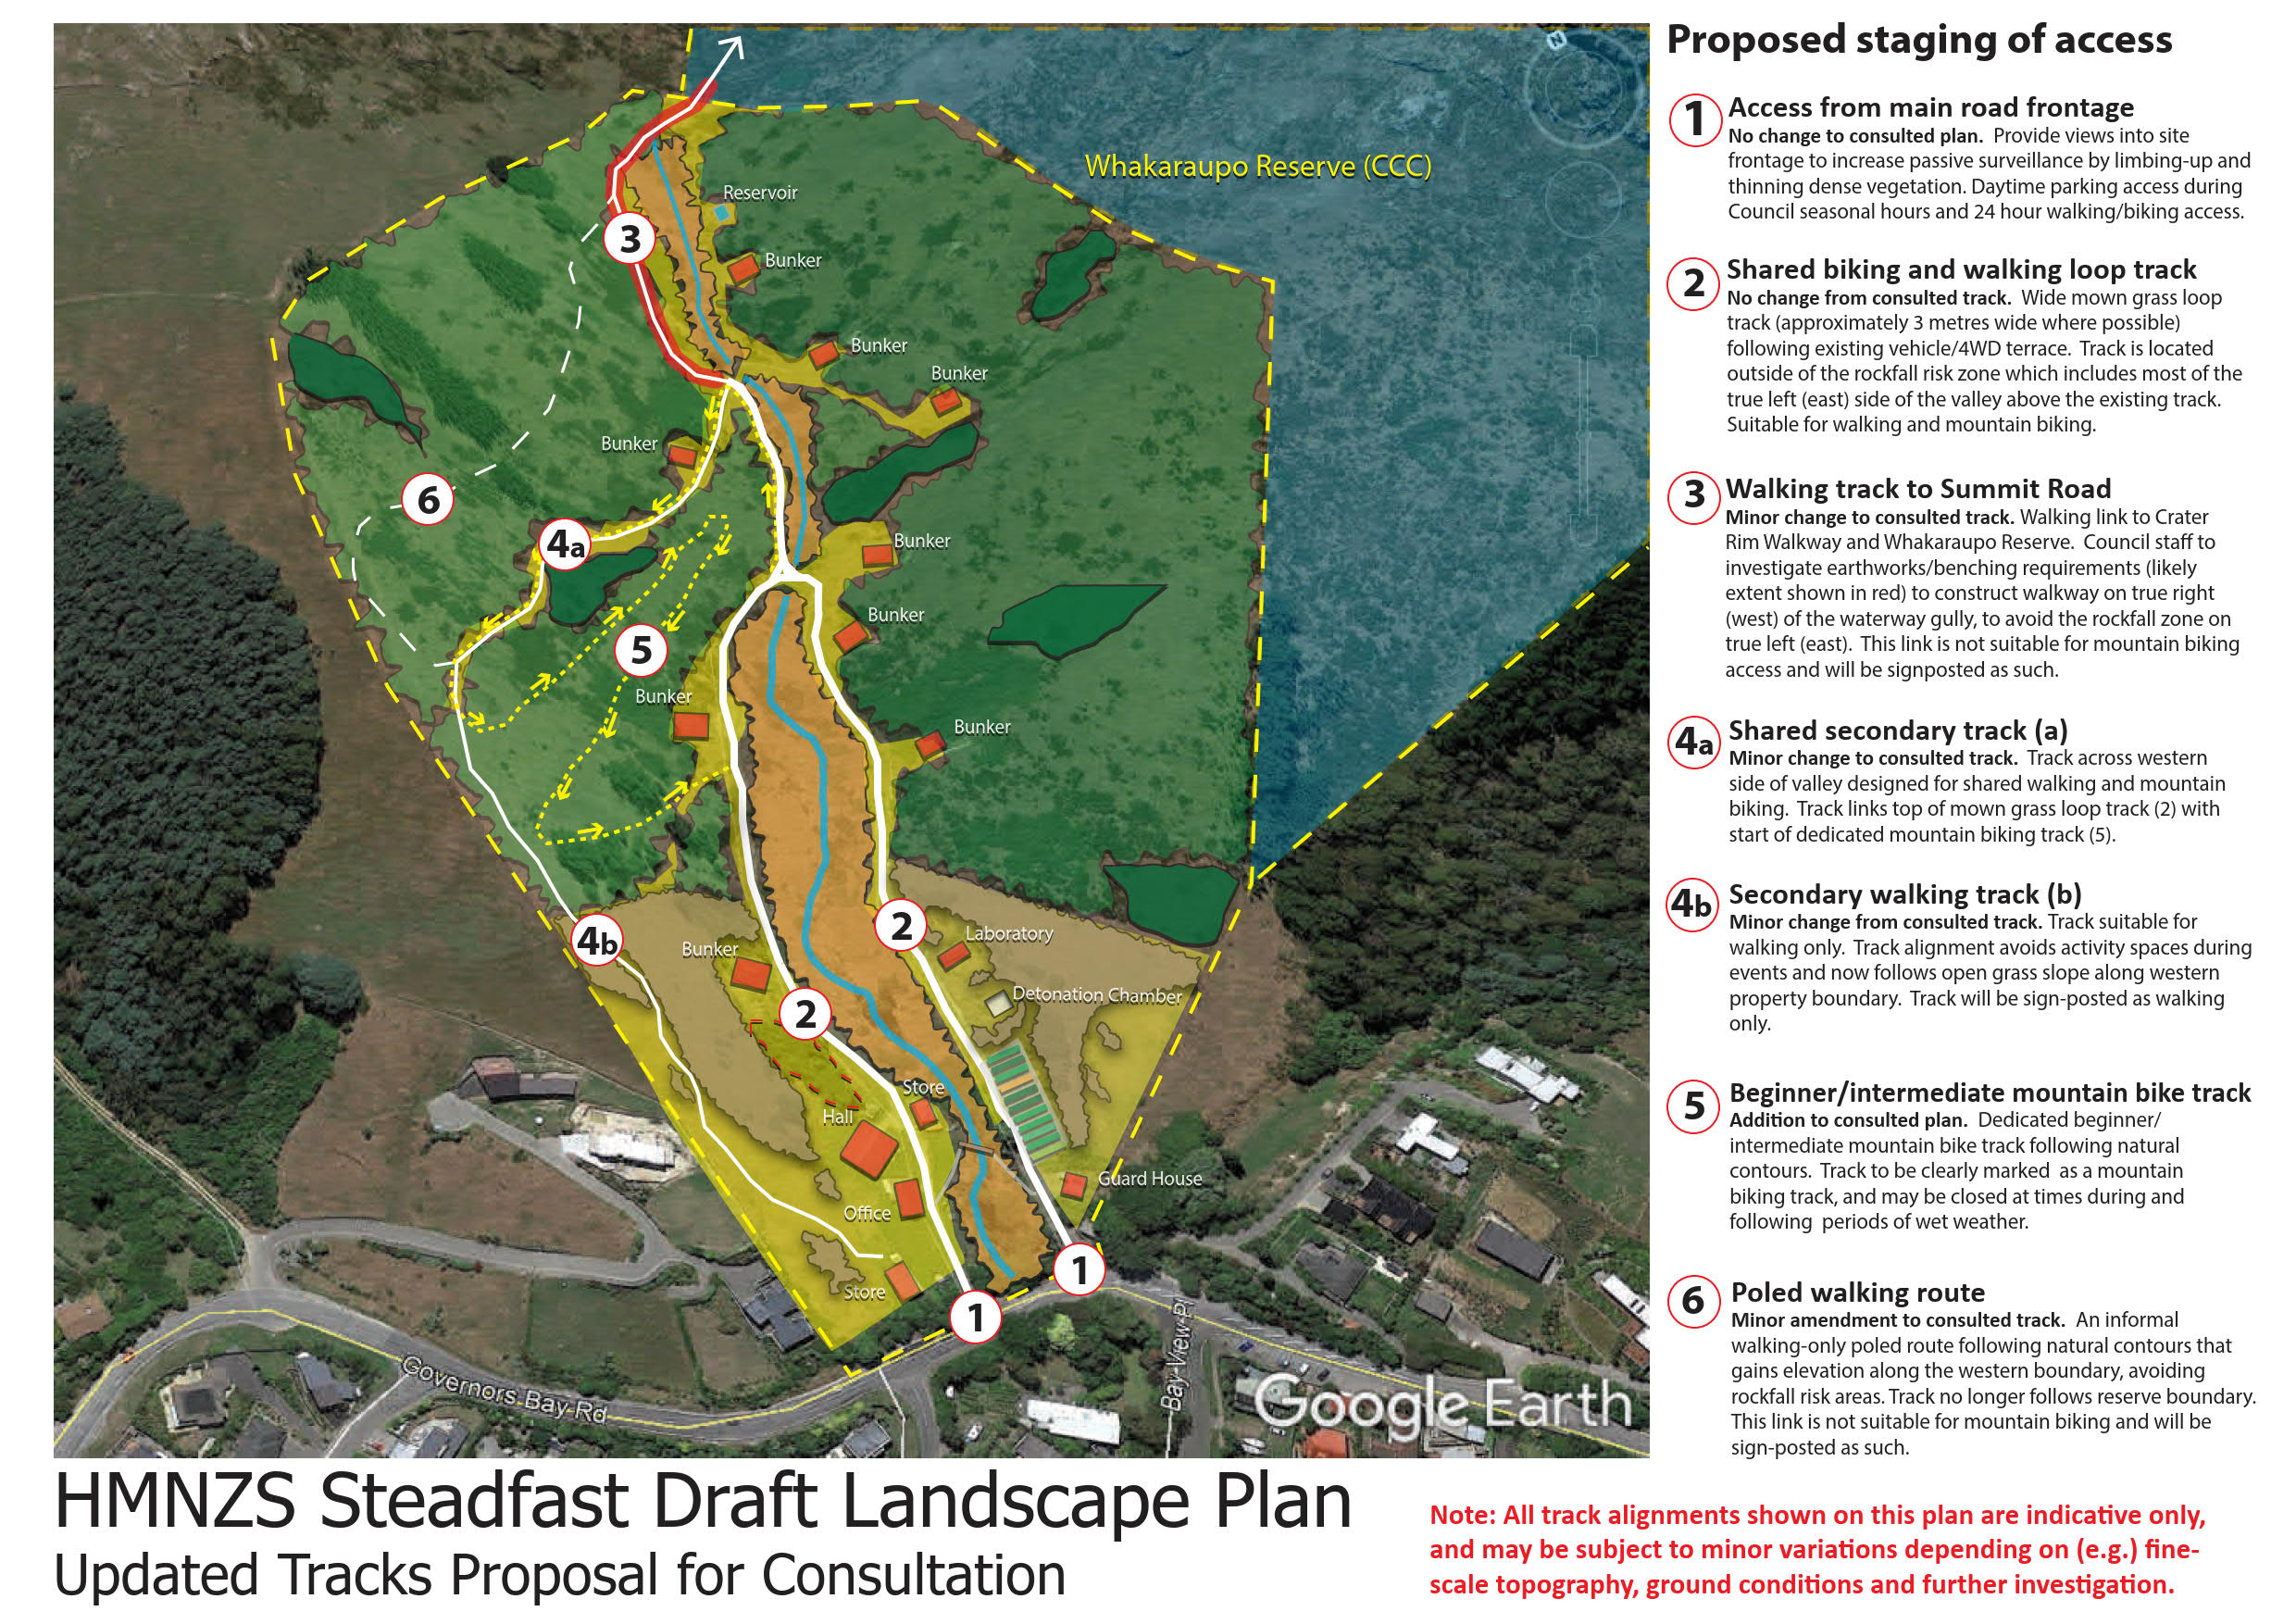 HMNZS amended tracks - plan for consultation